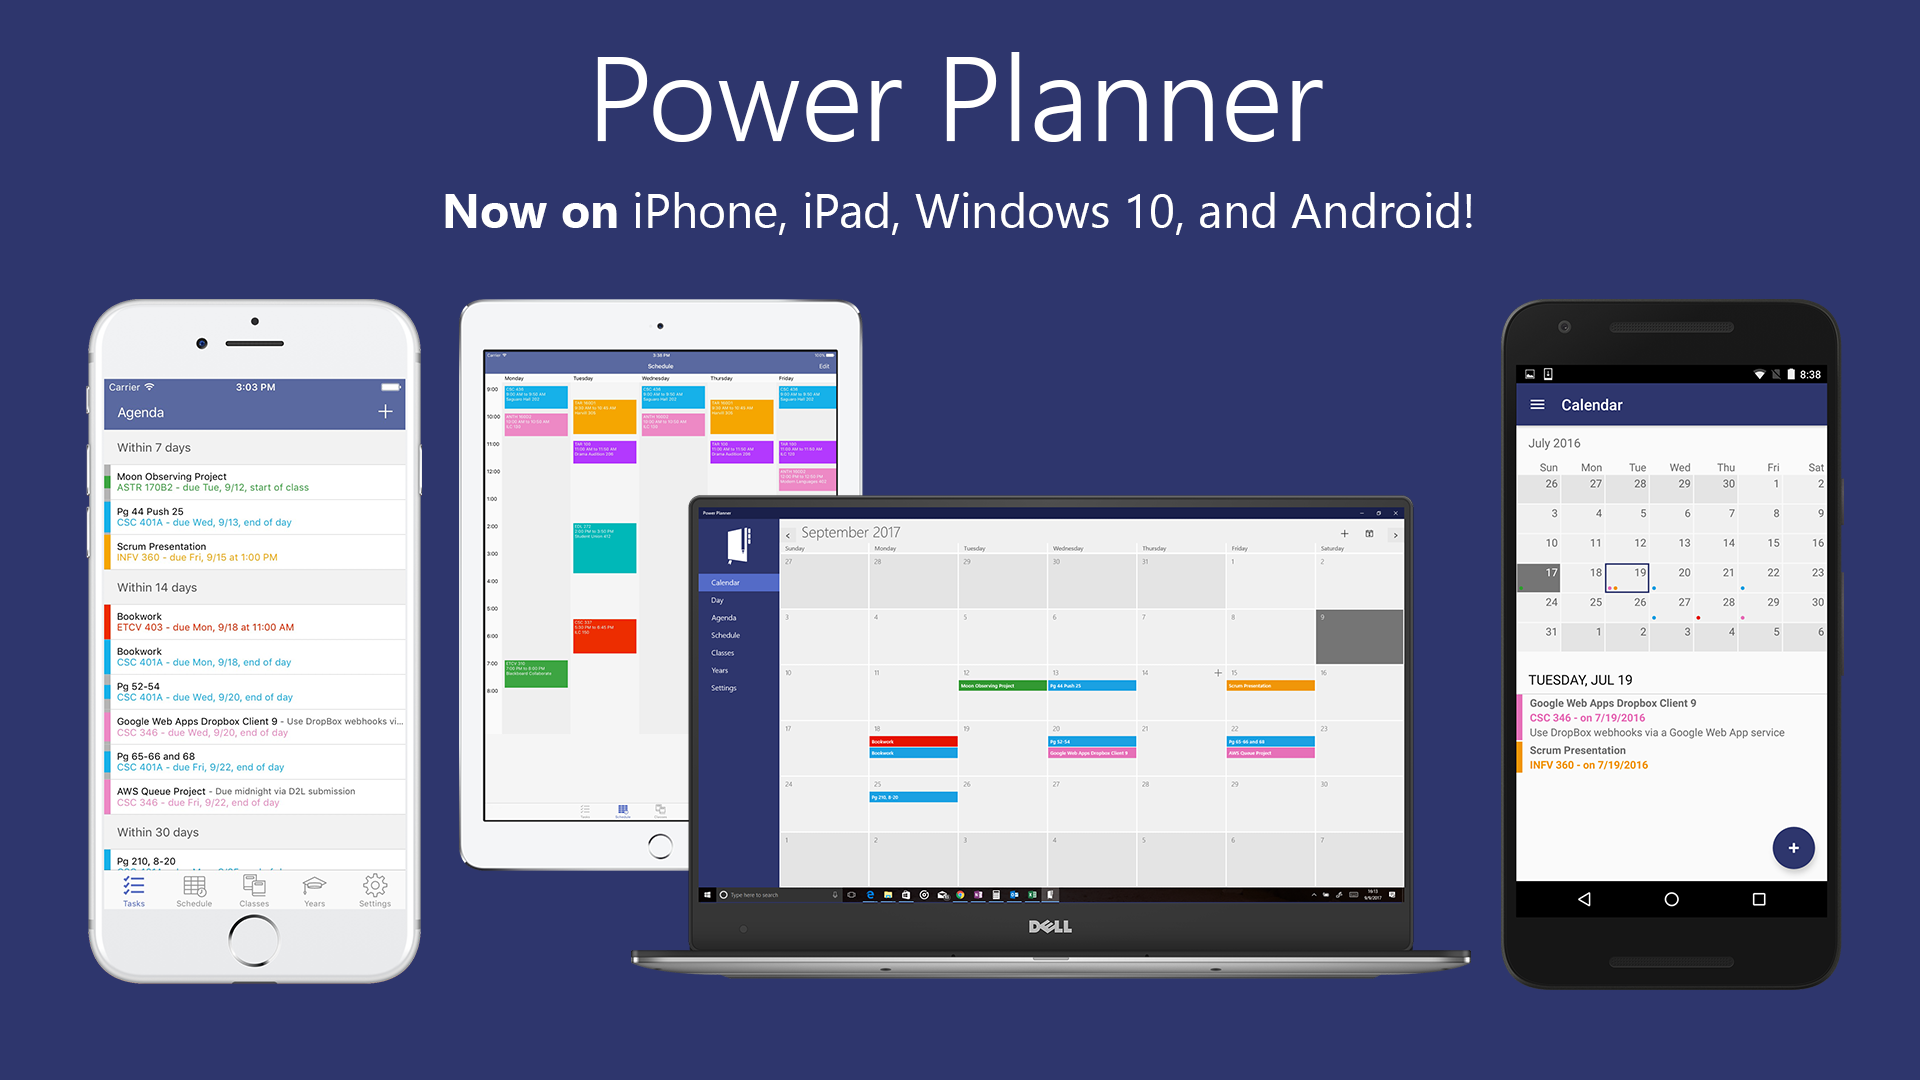 Image of devices Power Planner available on